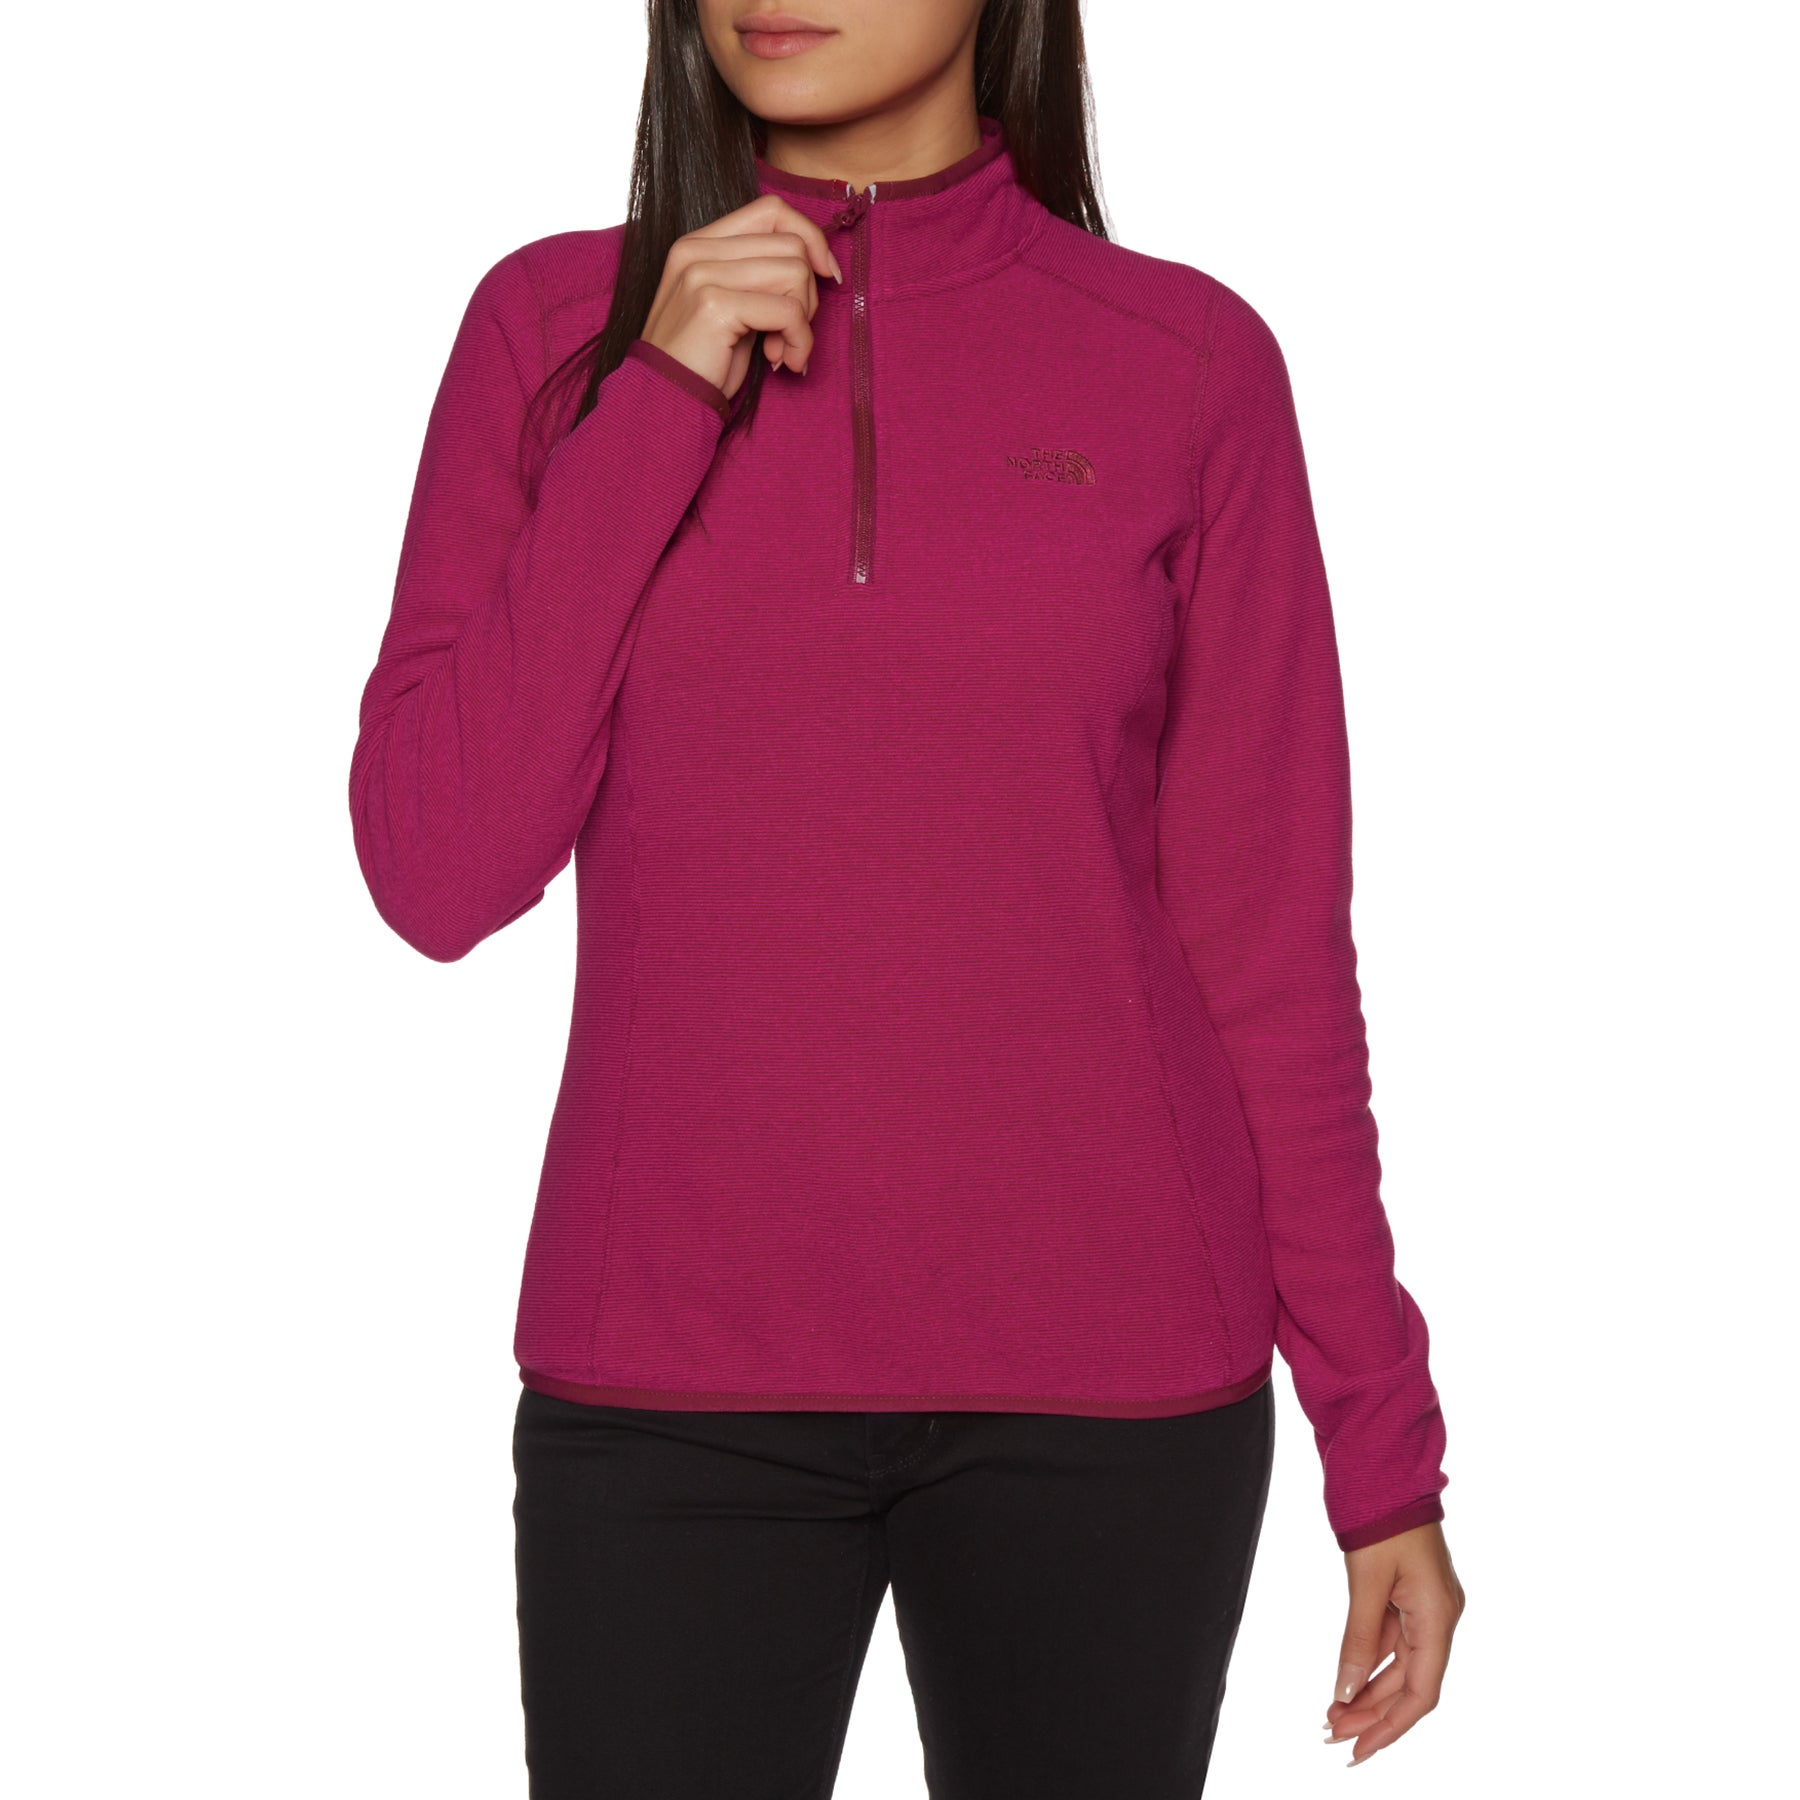 North Face 100 Glacier Quarter Zip Womens Fleece - Rumba Red Cerise Pink Stripe